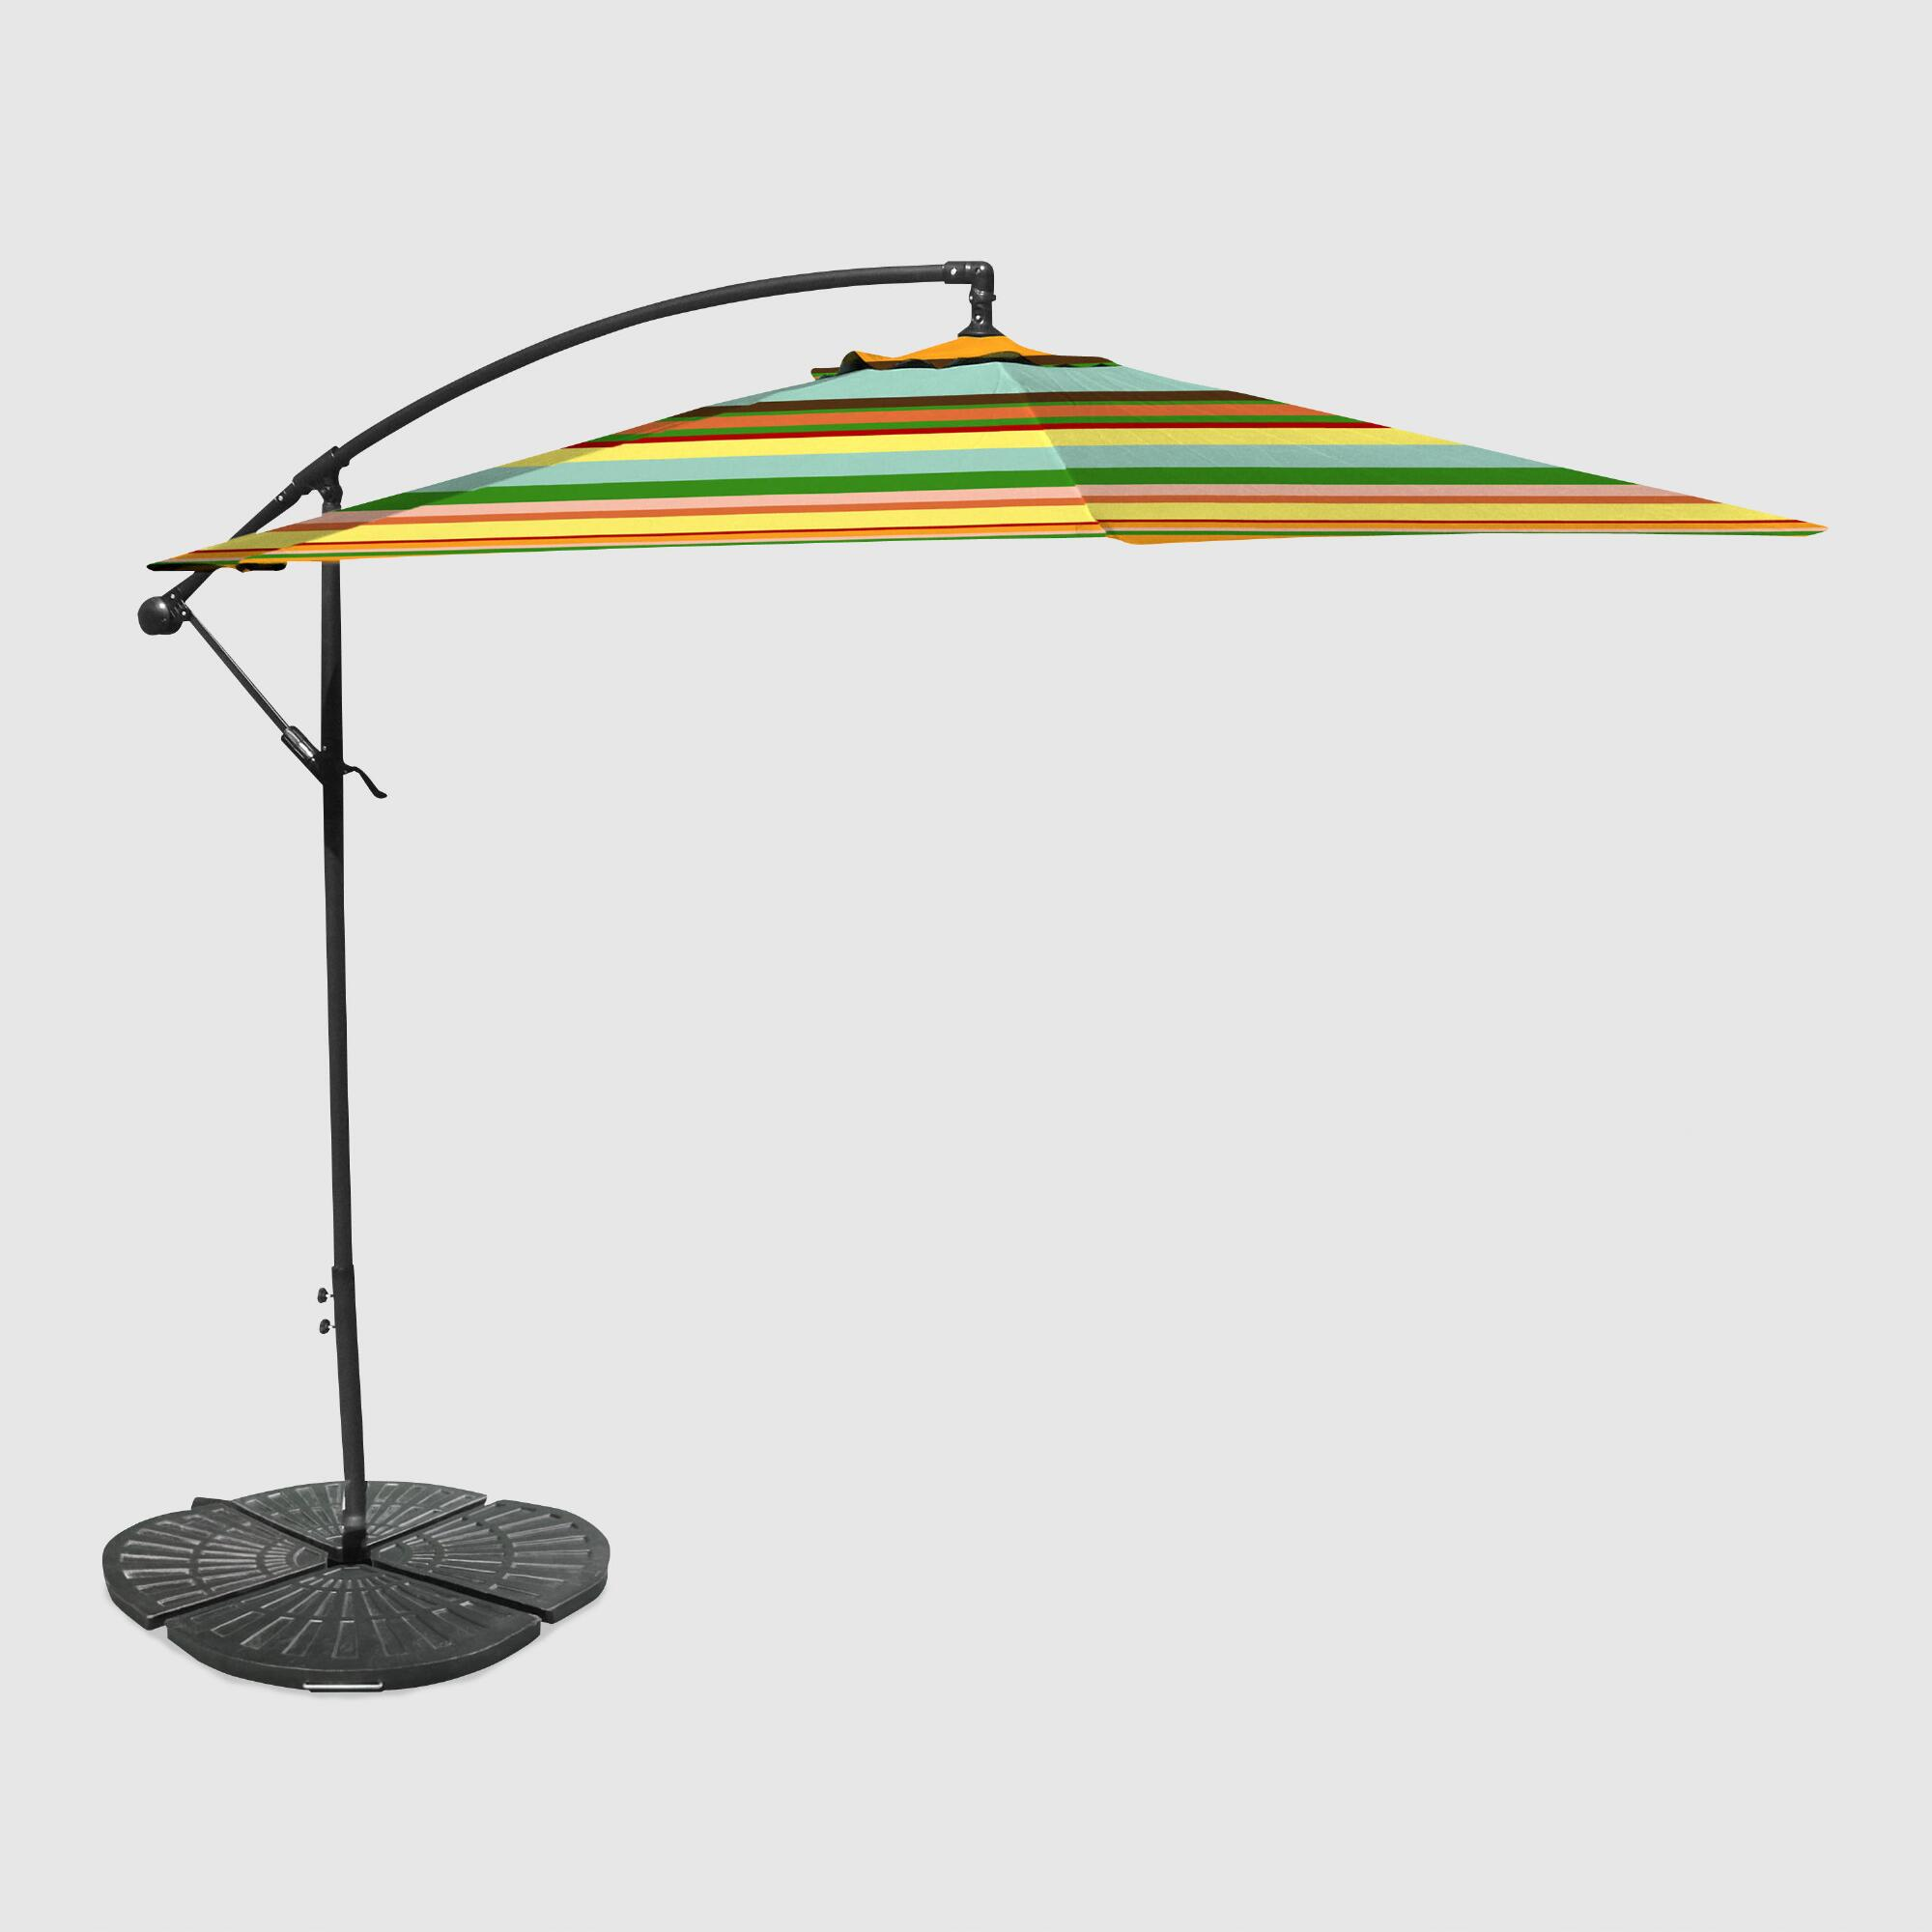 Outdoor Kitchen Umbrella: Havana Stripe 10 Ft Outdoor Cantilever Umbrella And Weight